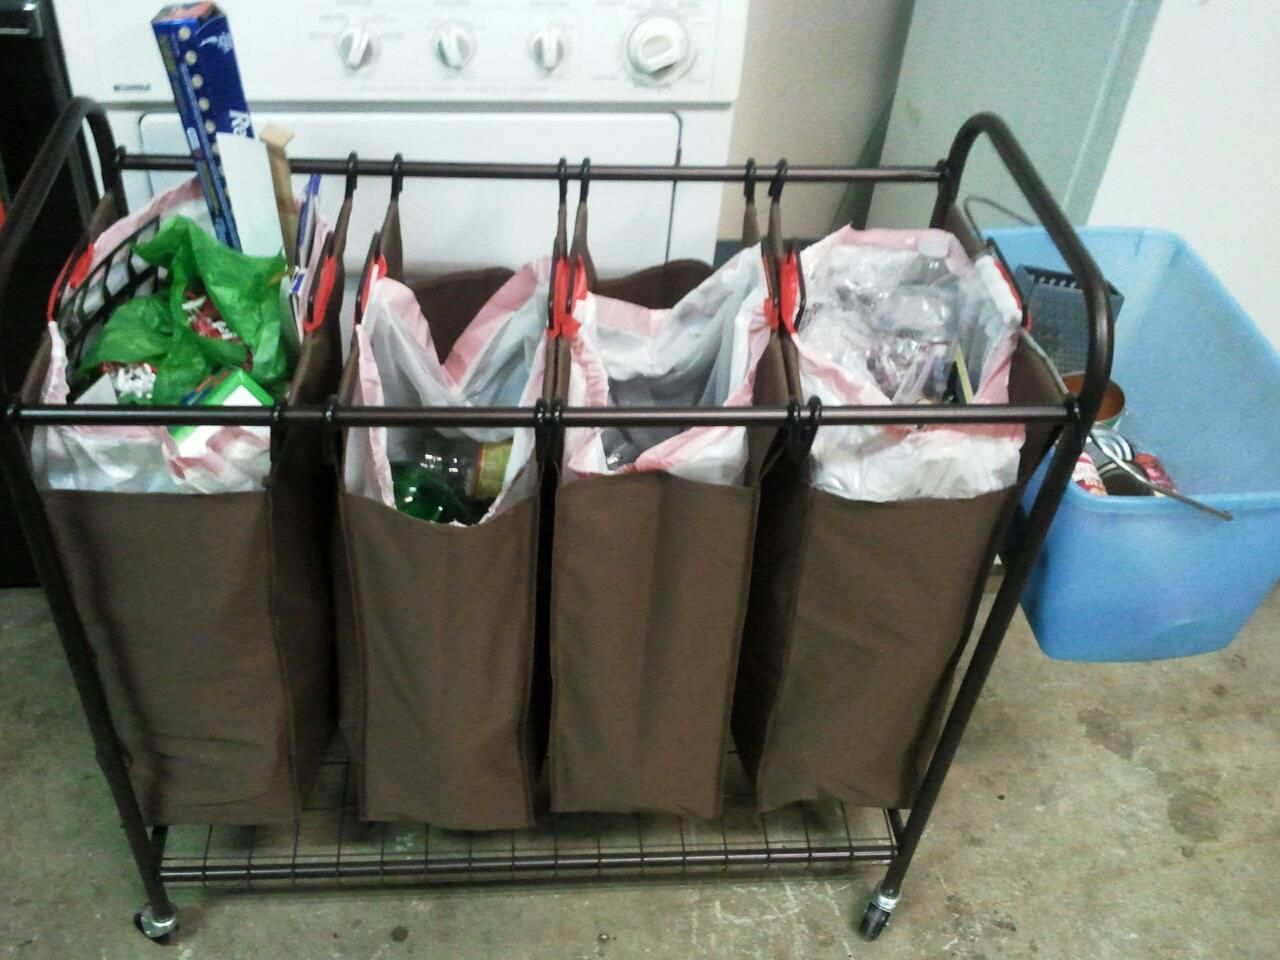 Kitchen Garbage Bags Cabinet Home Depot Using A Laundry Cart With Trash I Have Recycling